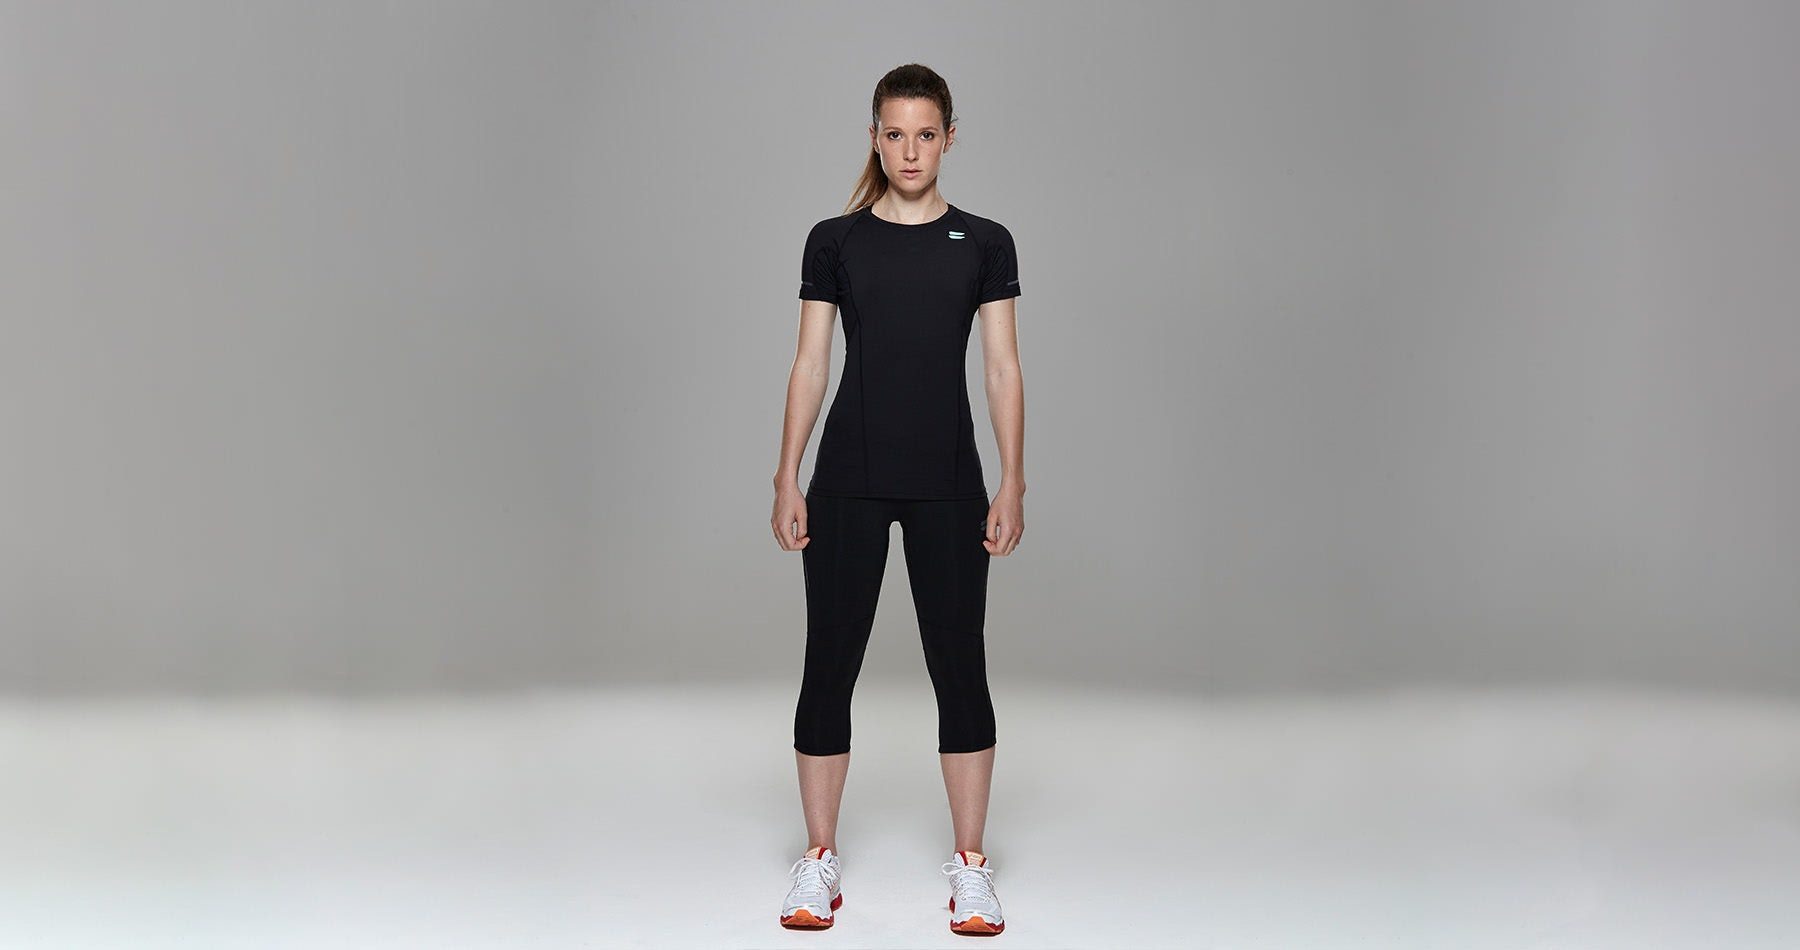 Tribesports Core Women's Short Sleeve Top Black  5